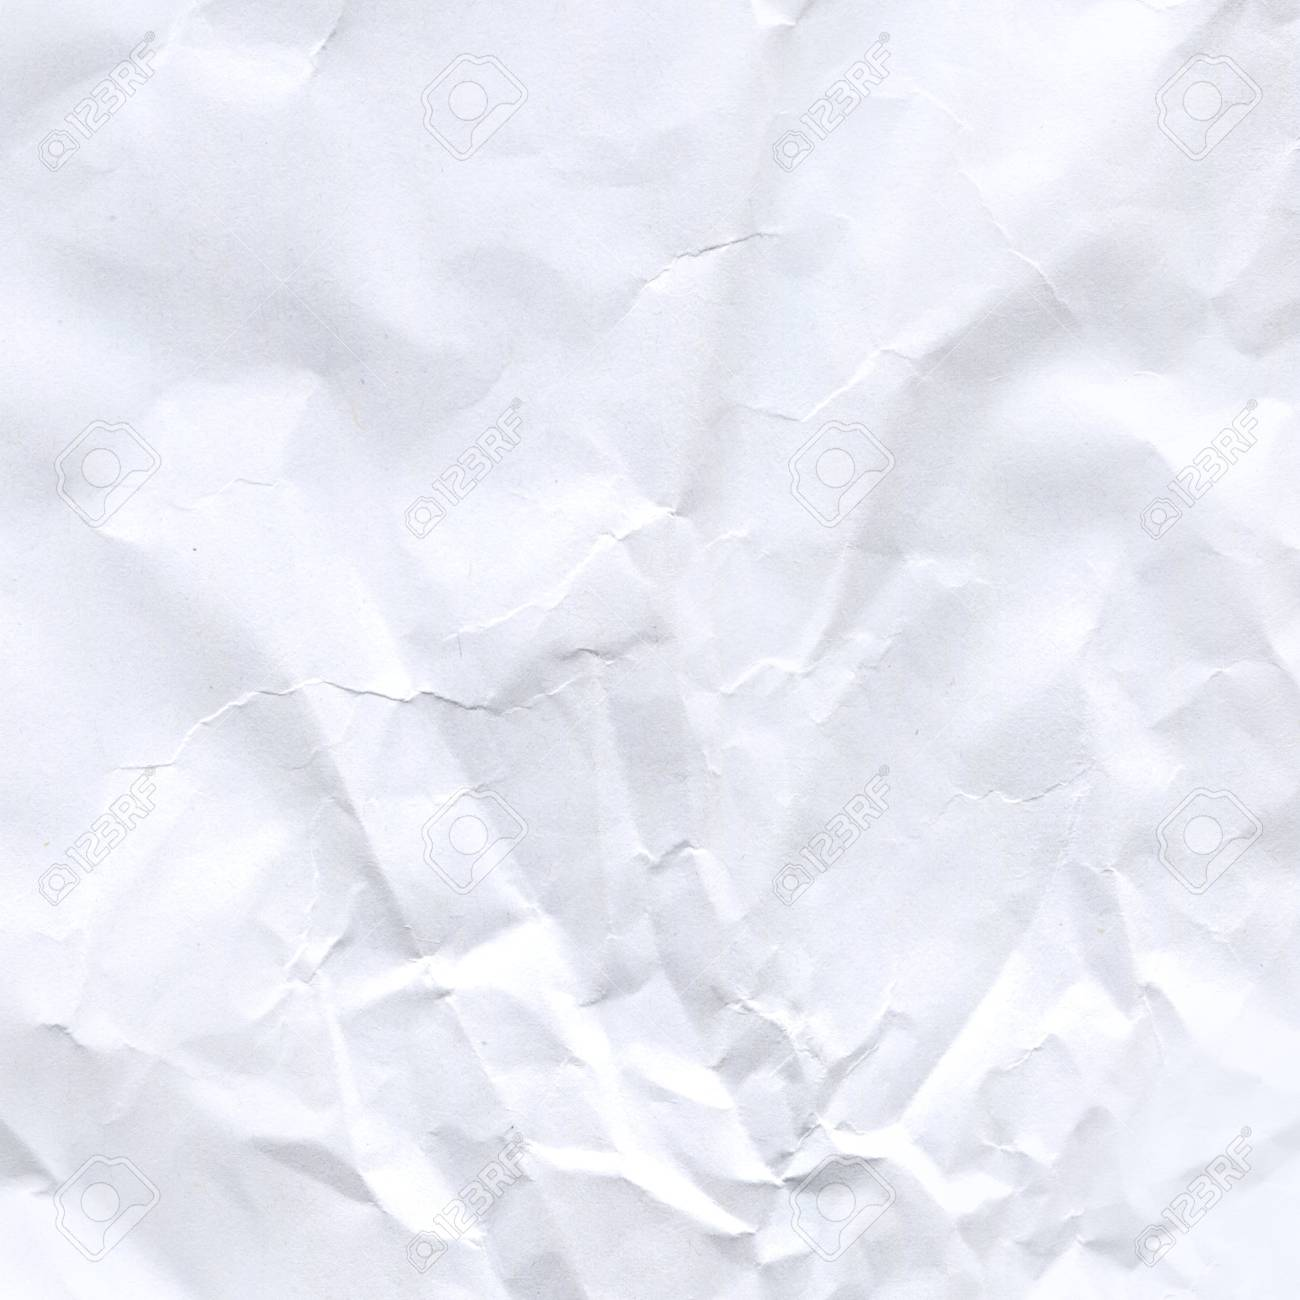 wrinkled paper background. close up crumpled white paper texture